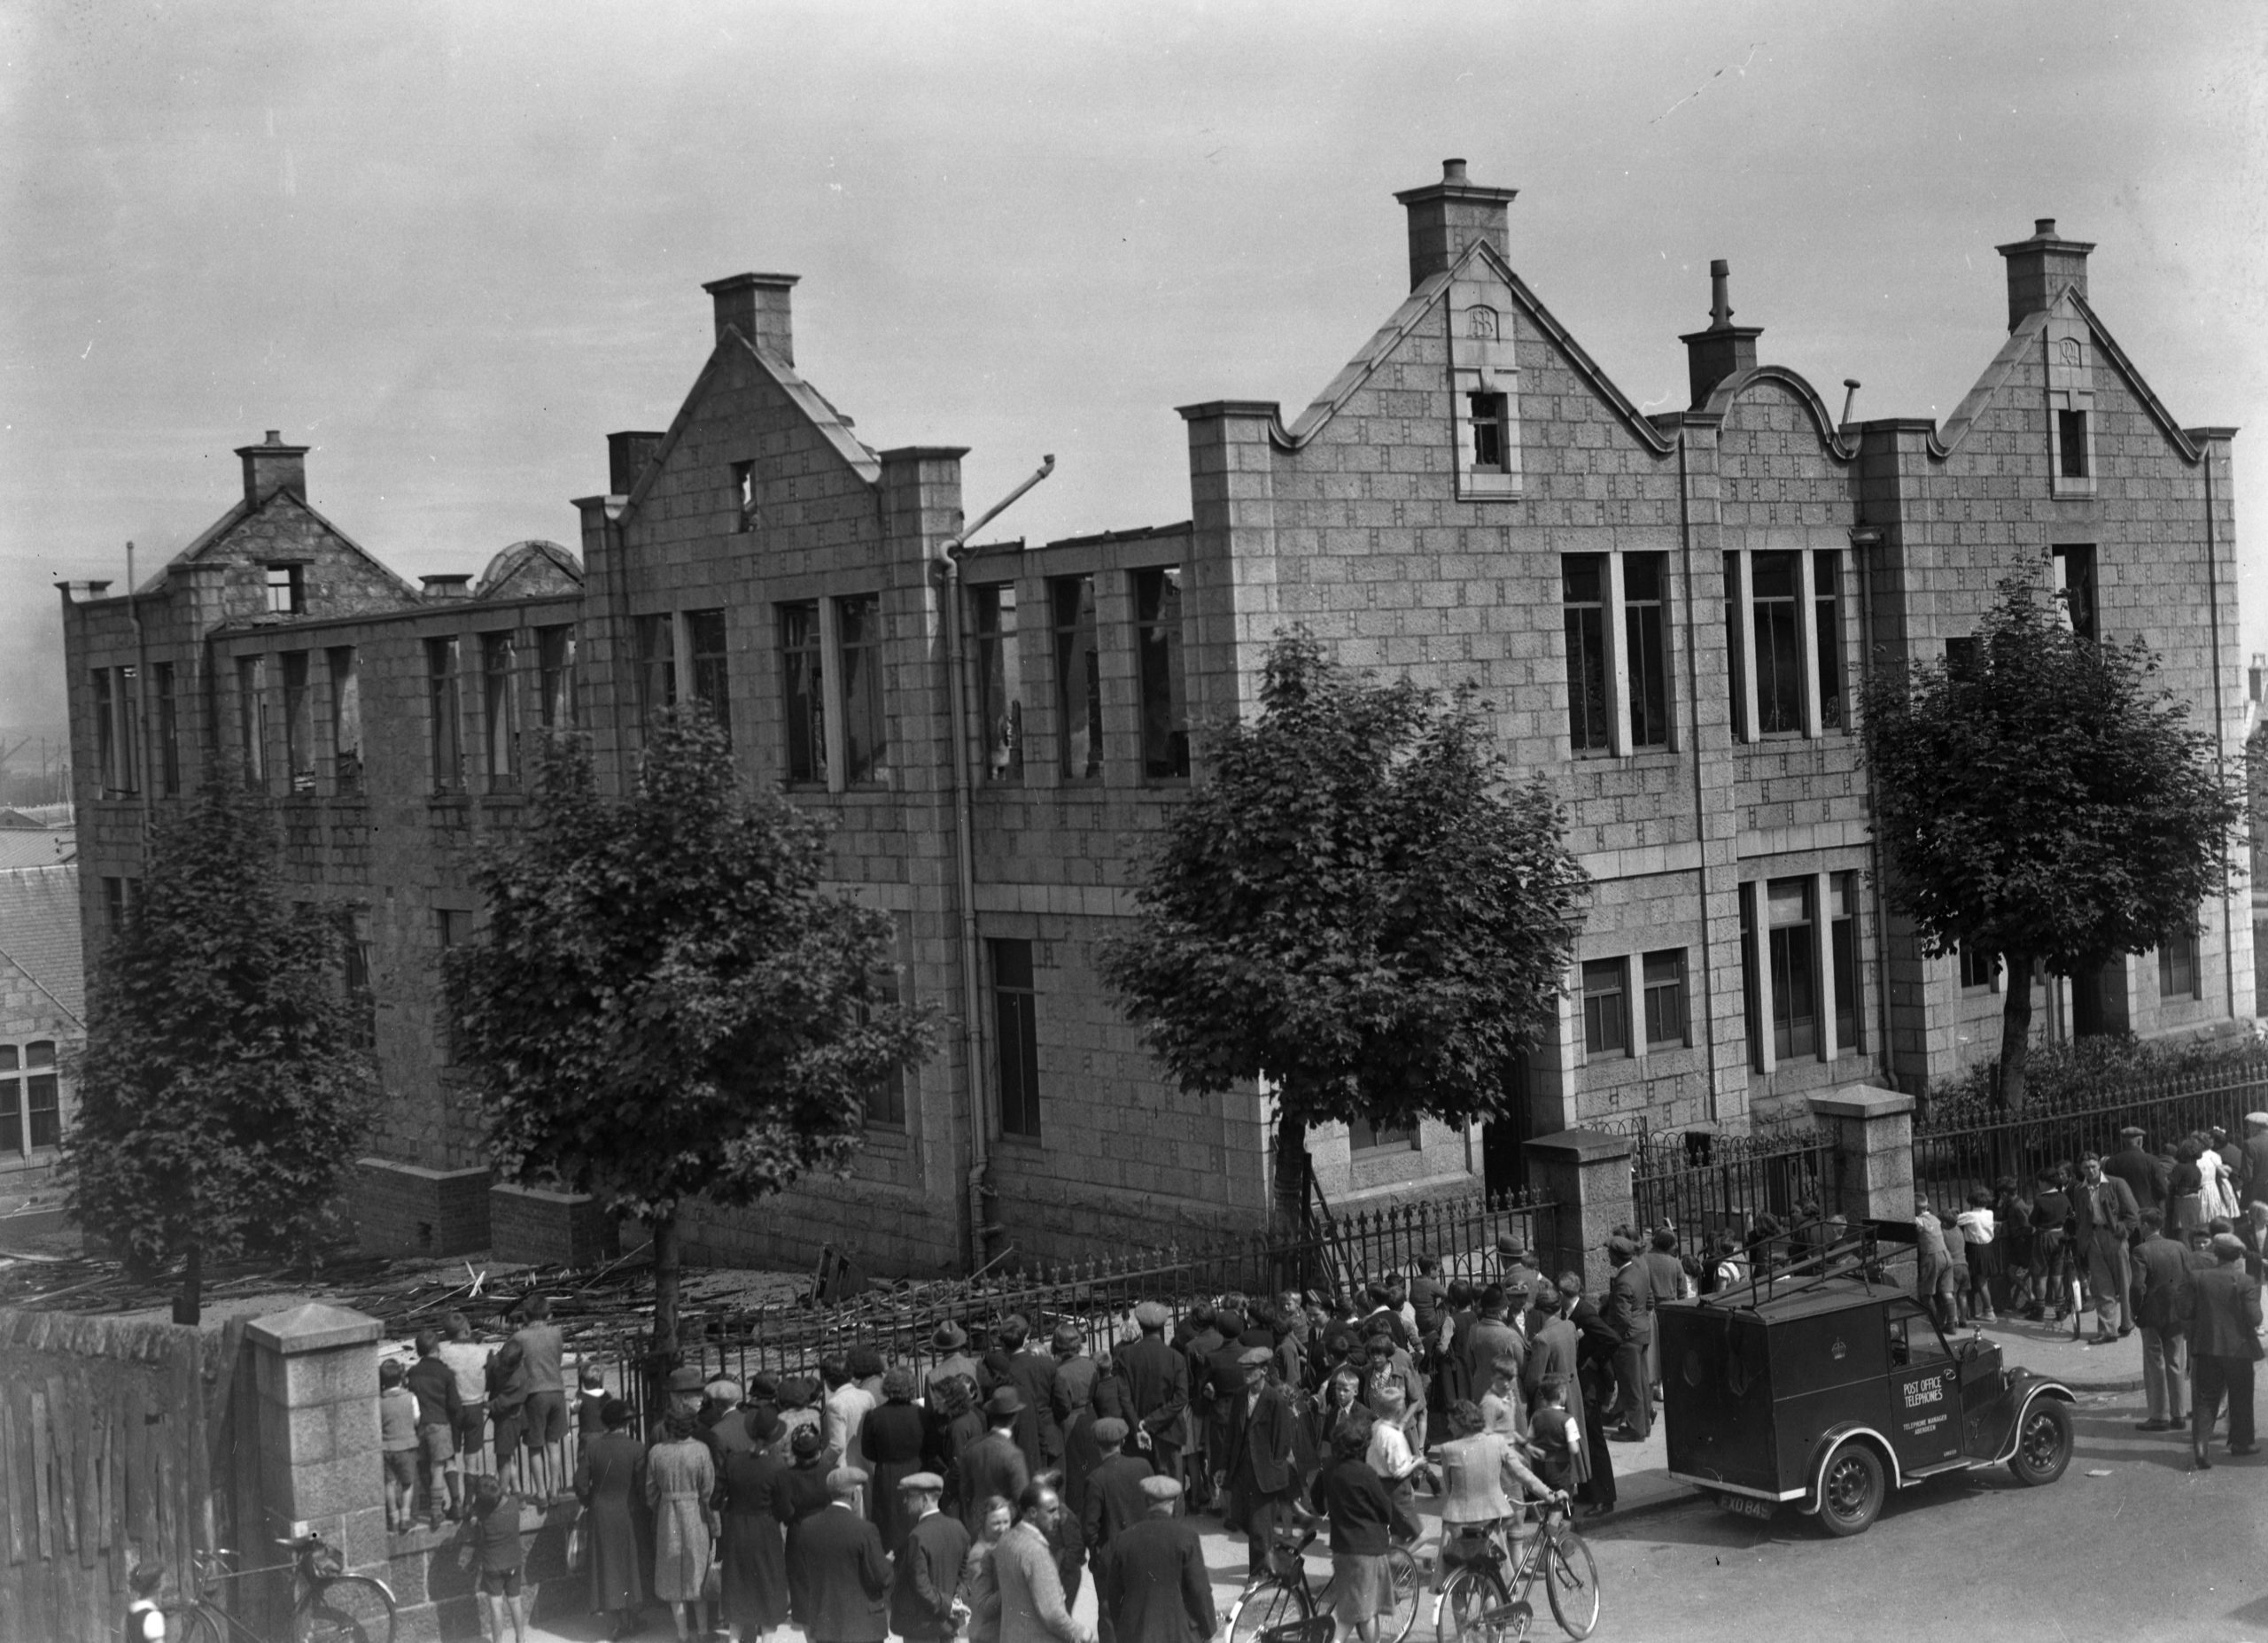 The bomb-damaged Victoria Road School, pictured in 1940.